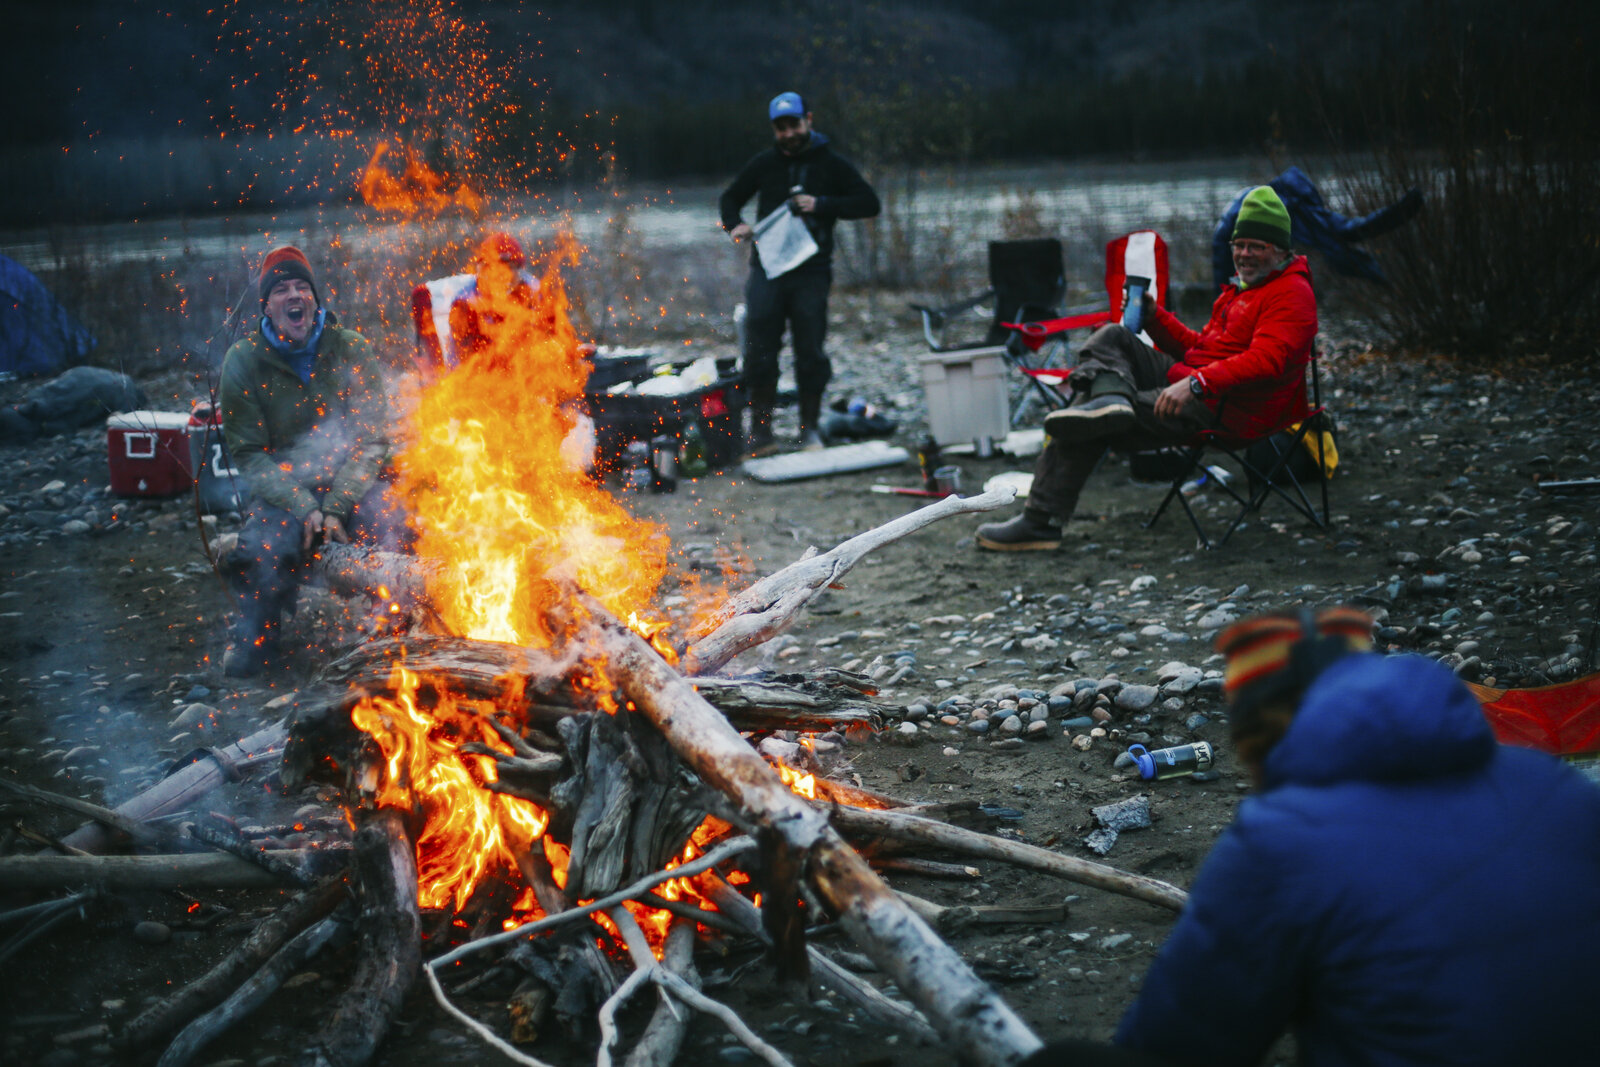 How To: Watch Someone Else Build A Campfire -